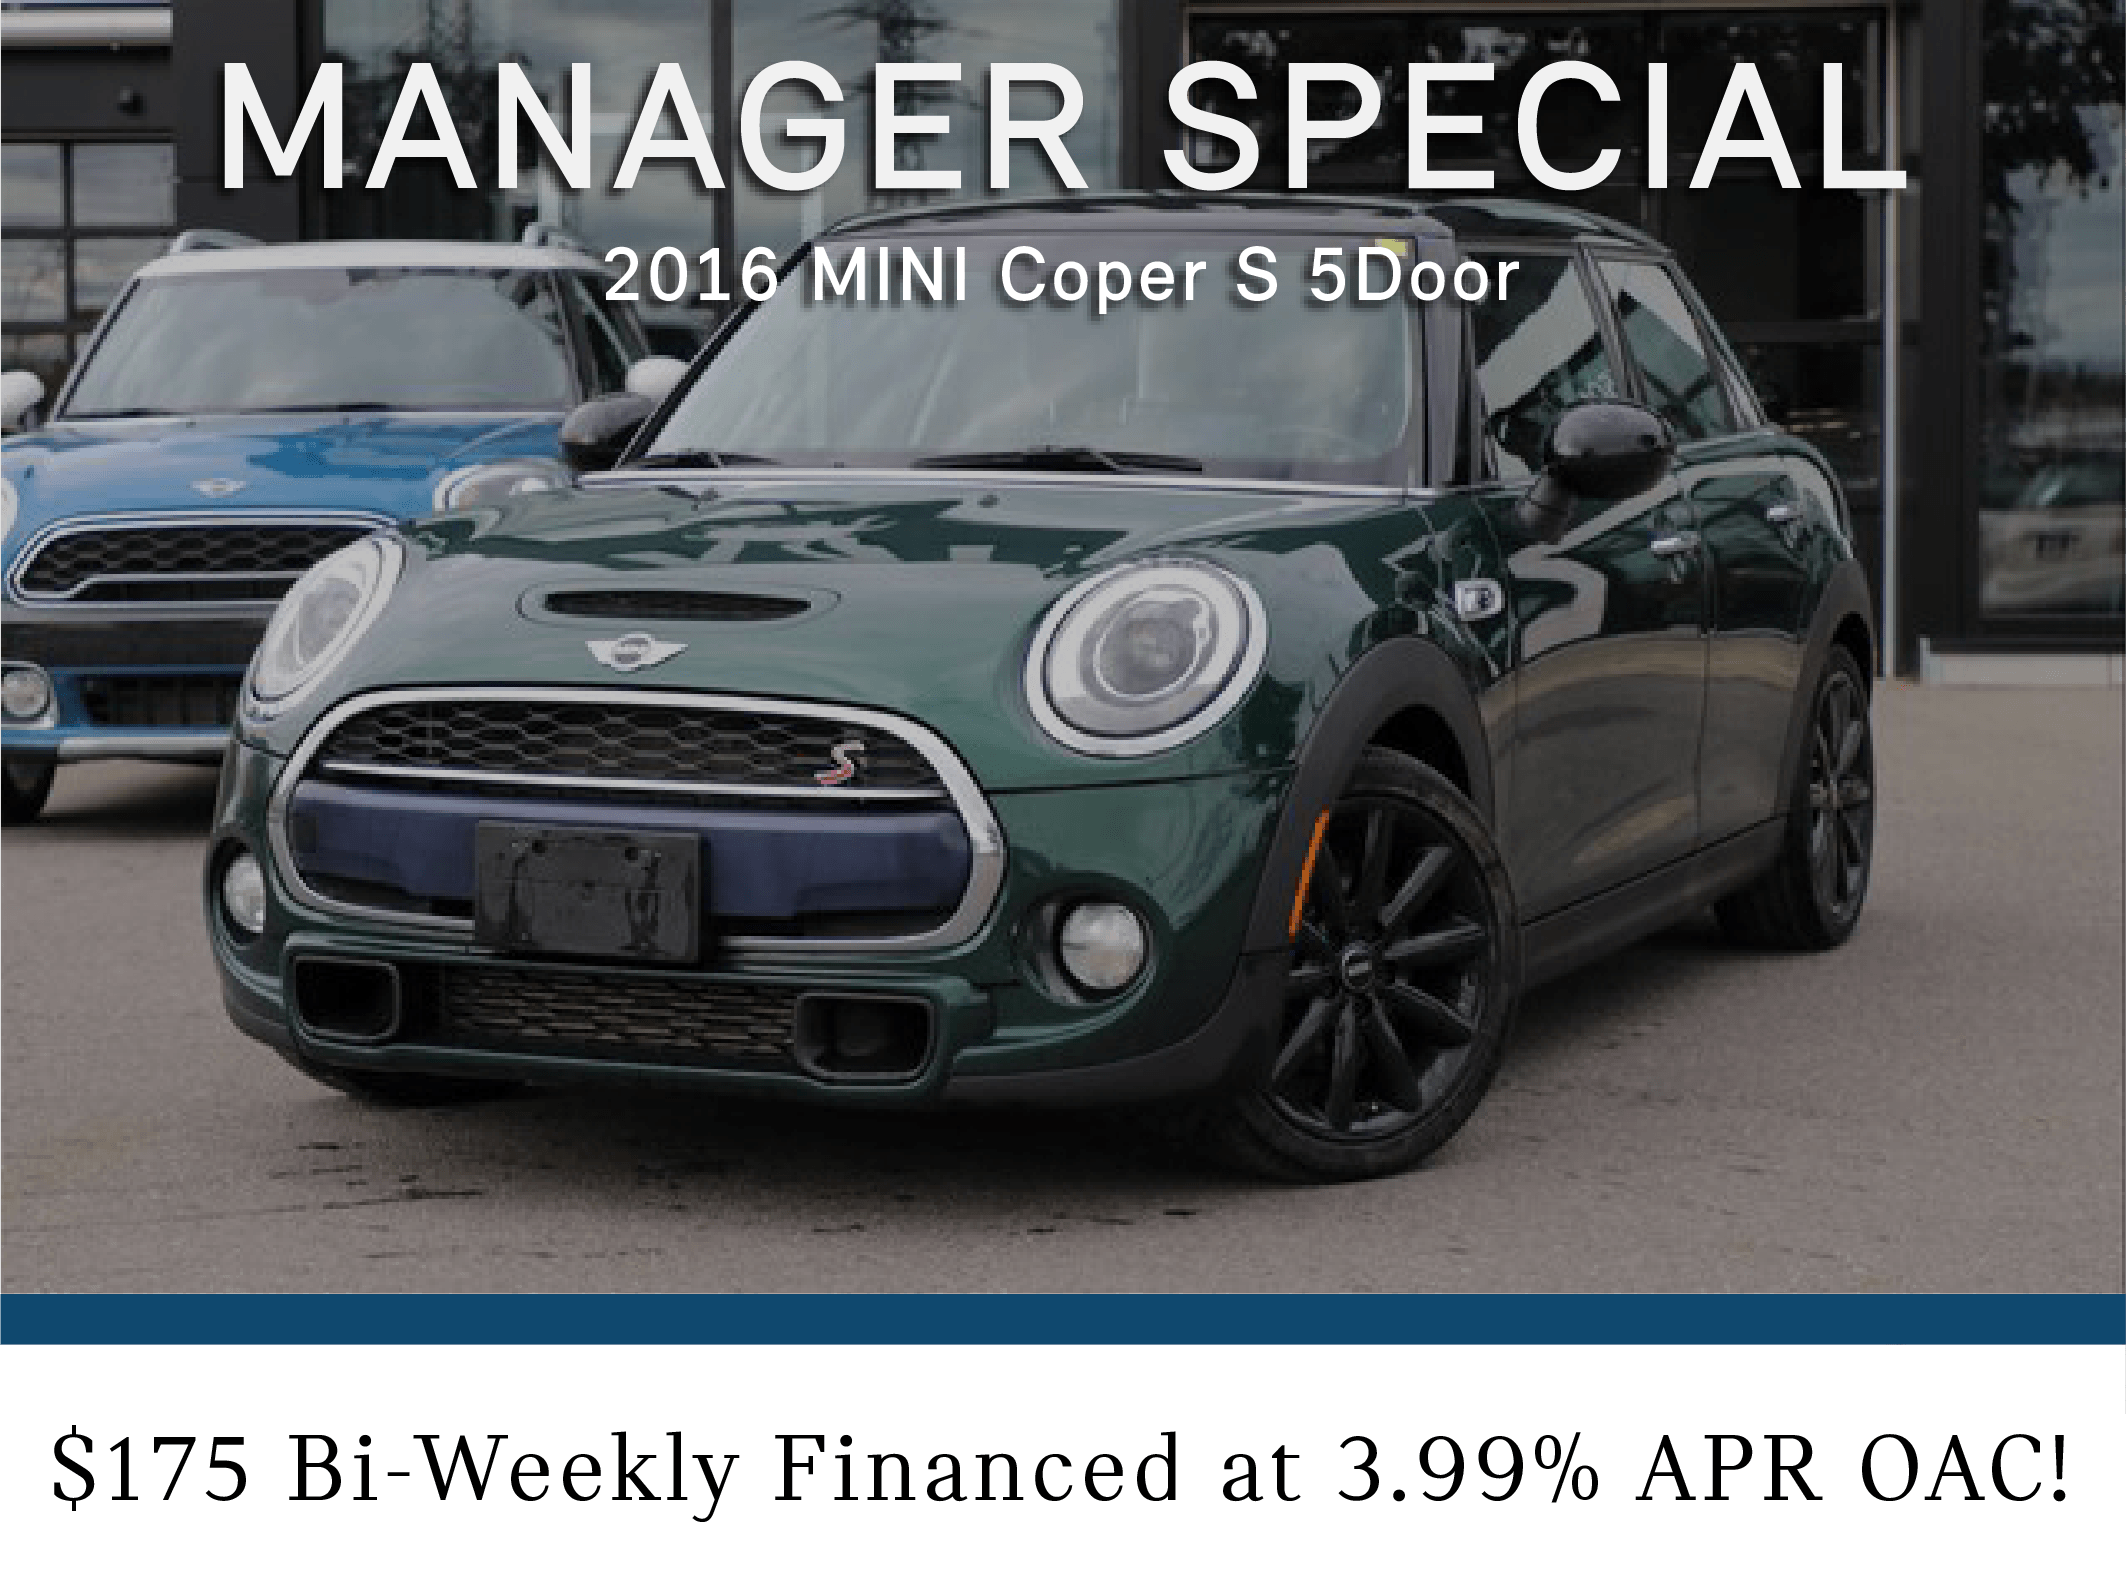 Manager Special- 2016 Mini Cooper S 5Door